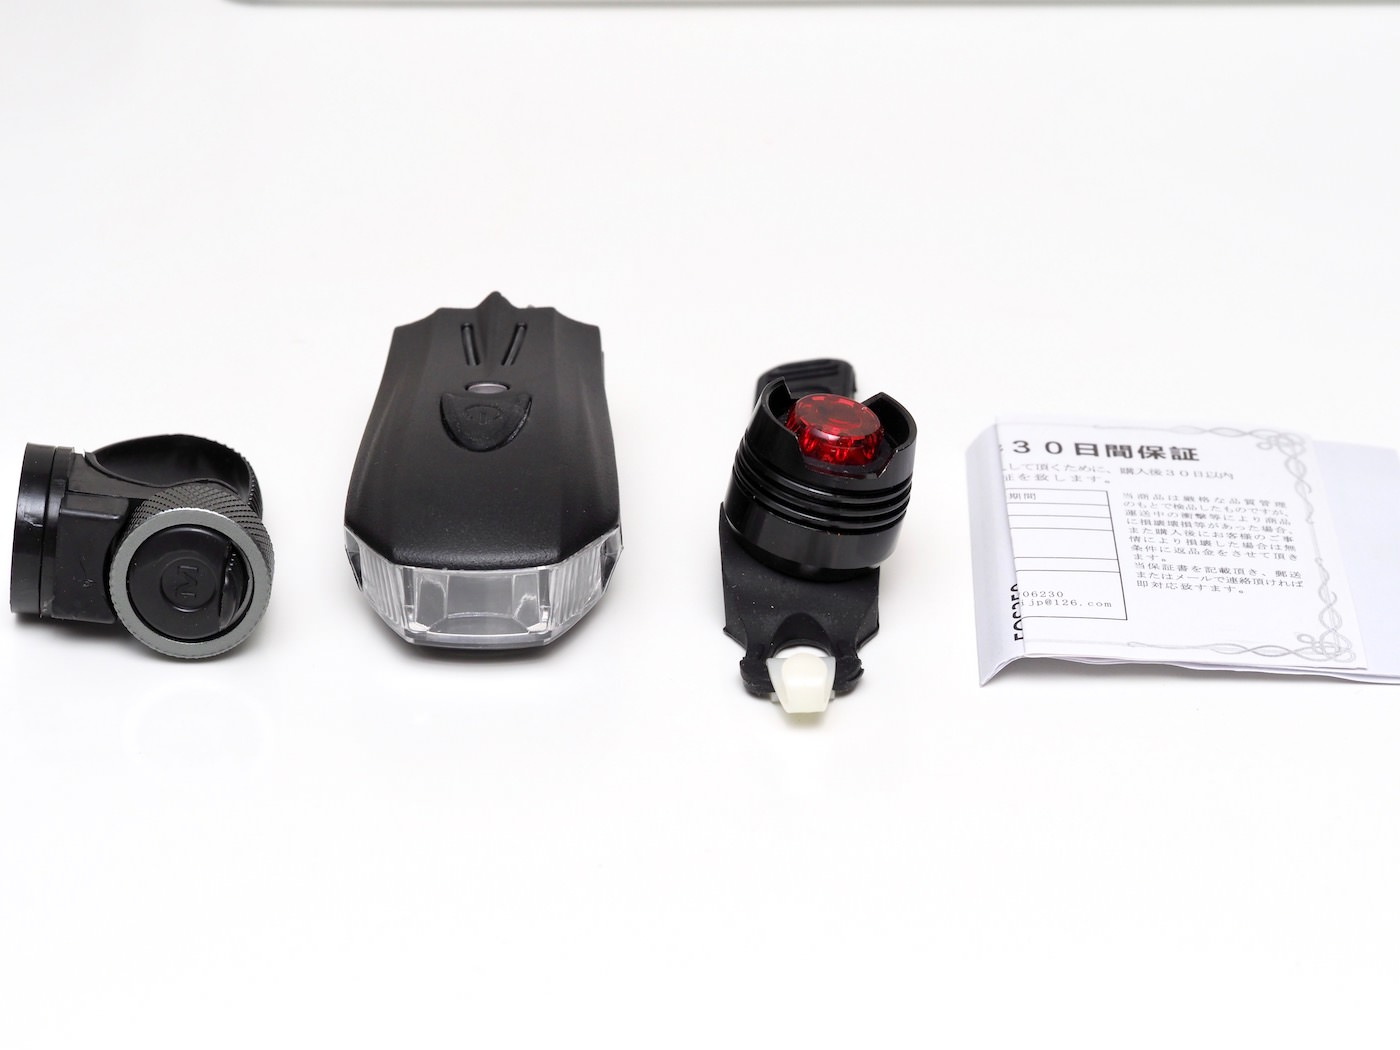 Cree xpg 2 cheap chinese led light with wide angle lens for bicycle 00002